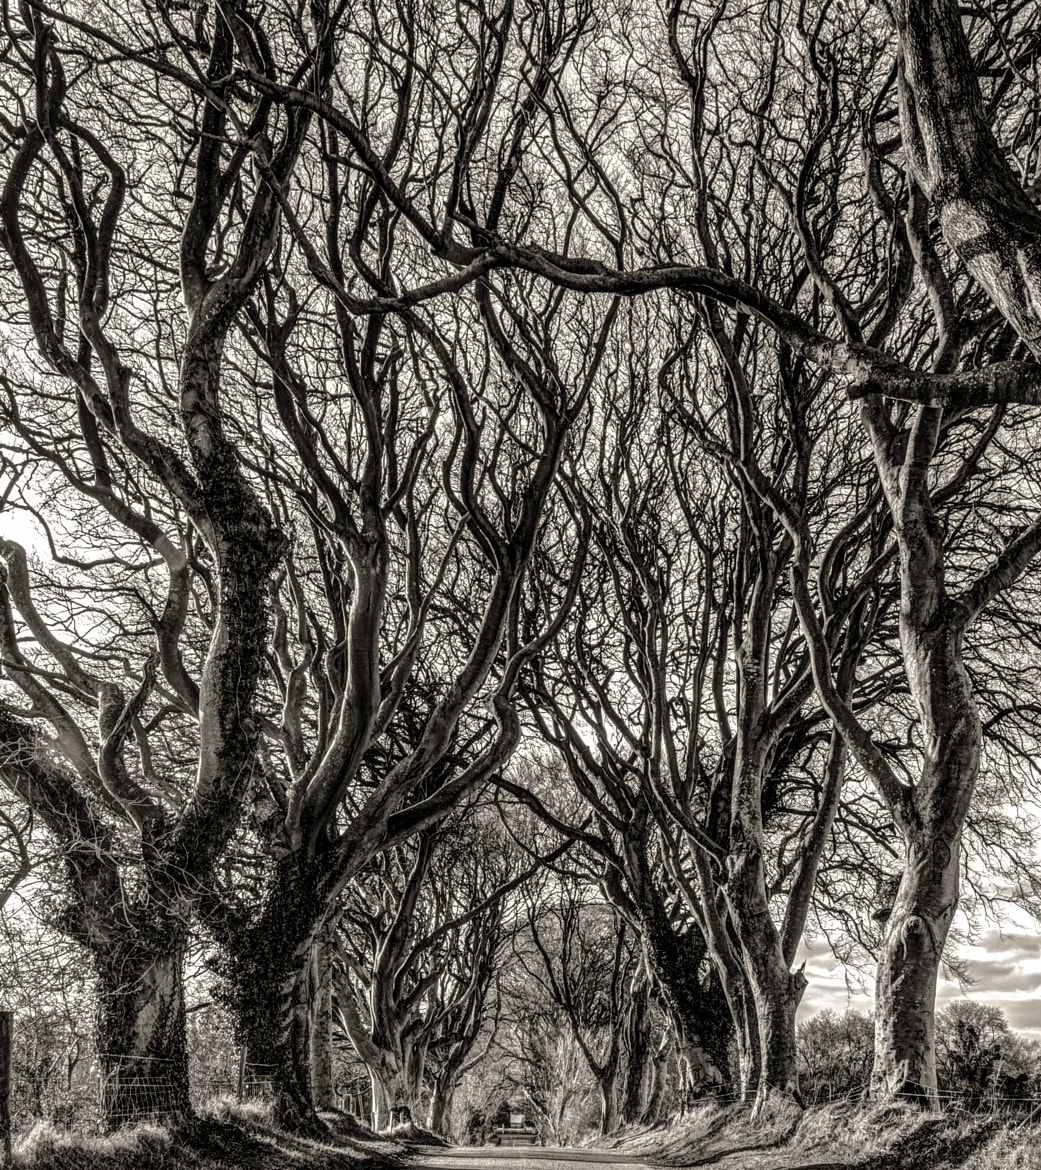 Photograph The Dark Hedges 1 by David Dickens on 500px